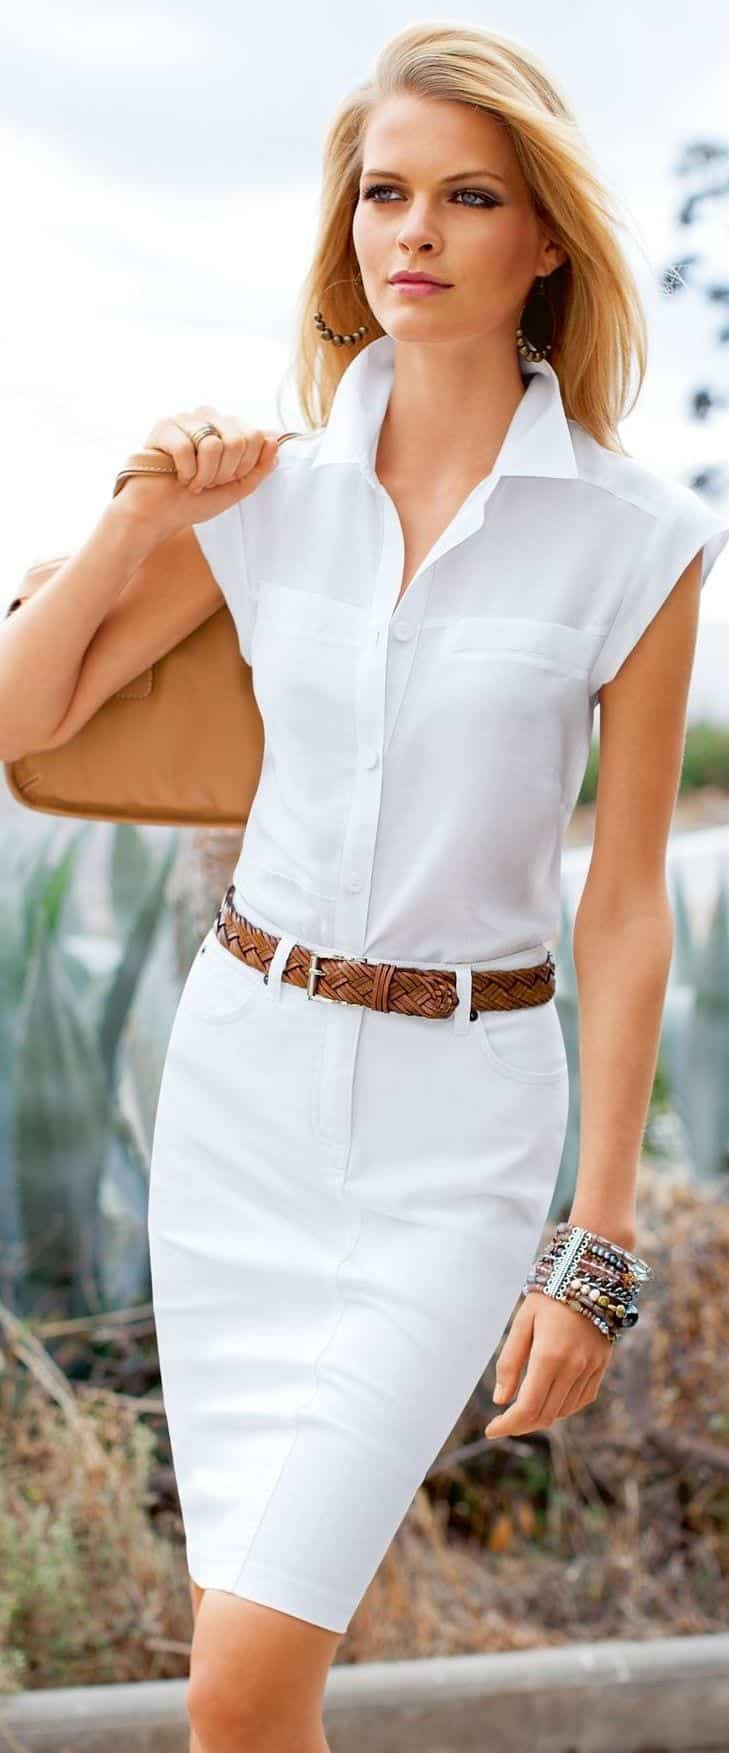 17 Cute Women Outfits With White Shirt Pairing Style Ideas